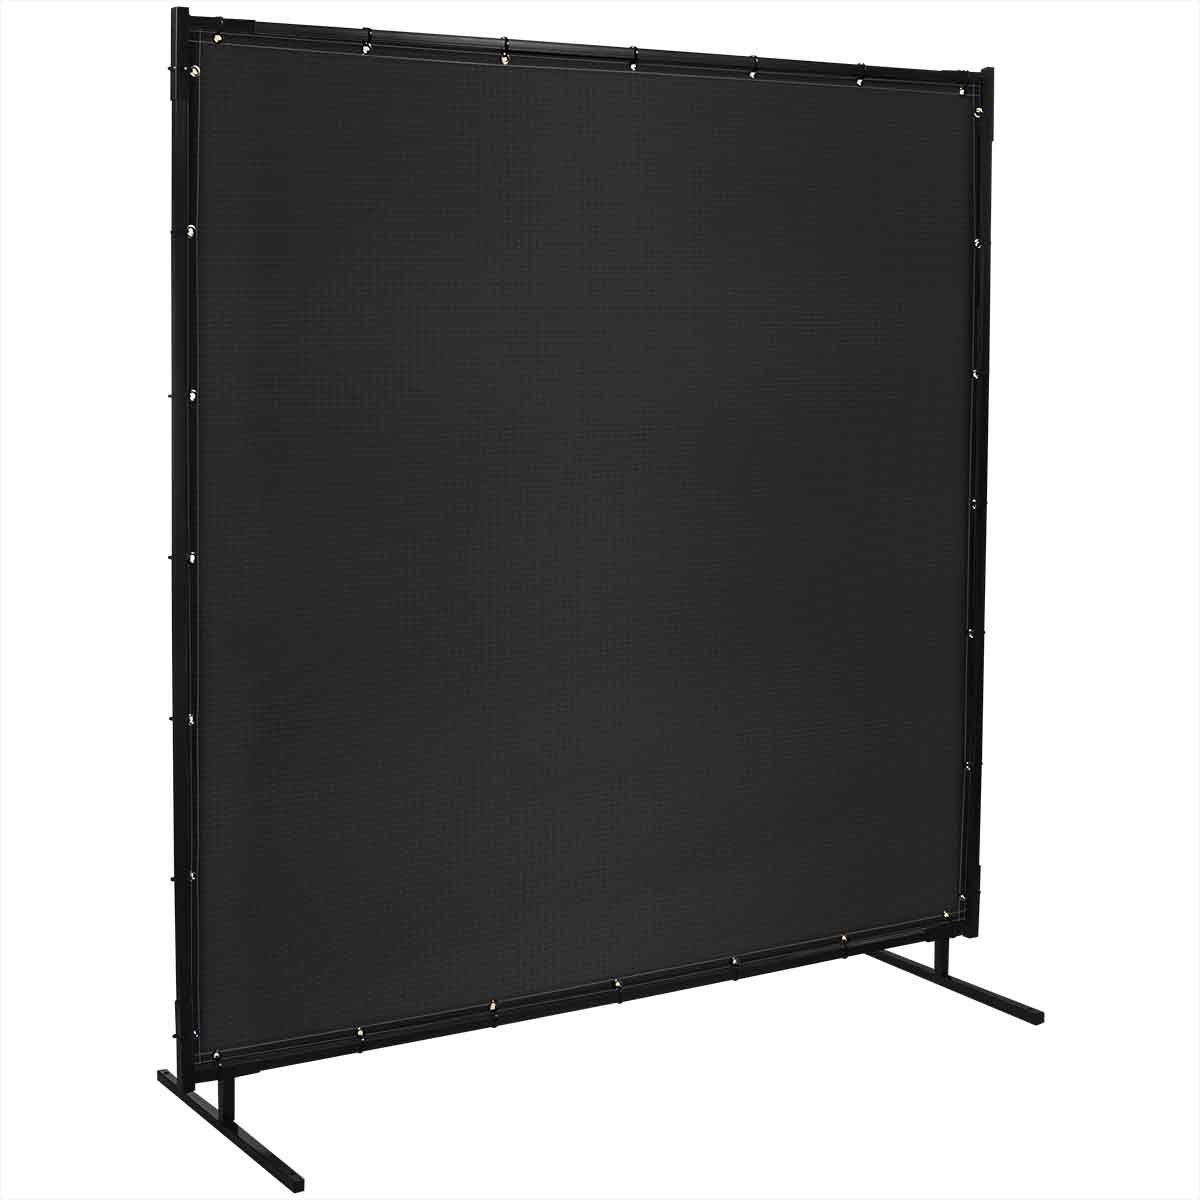 Steiner 536-4X6 Protect-O-Screen Classic Welding Screen with 13-Ounce Vinyl Laminated Polyester Curtain, Black, 4 x 6' by Steiner